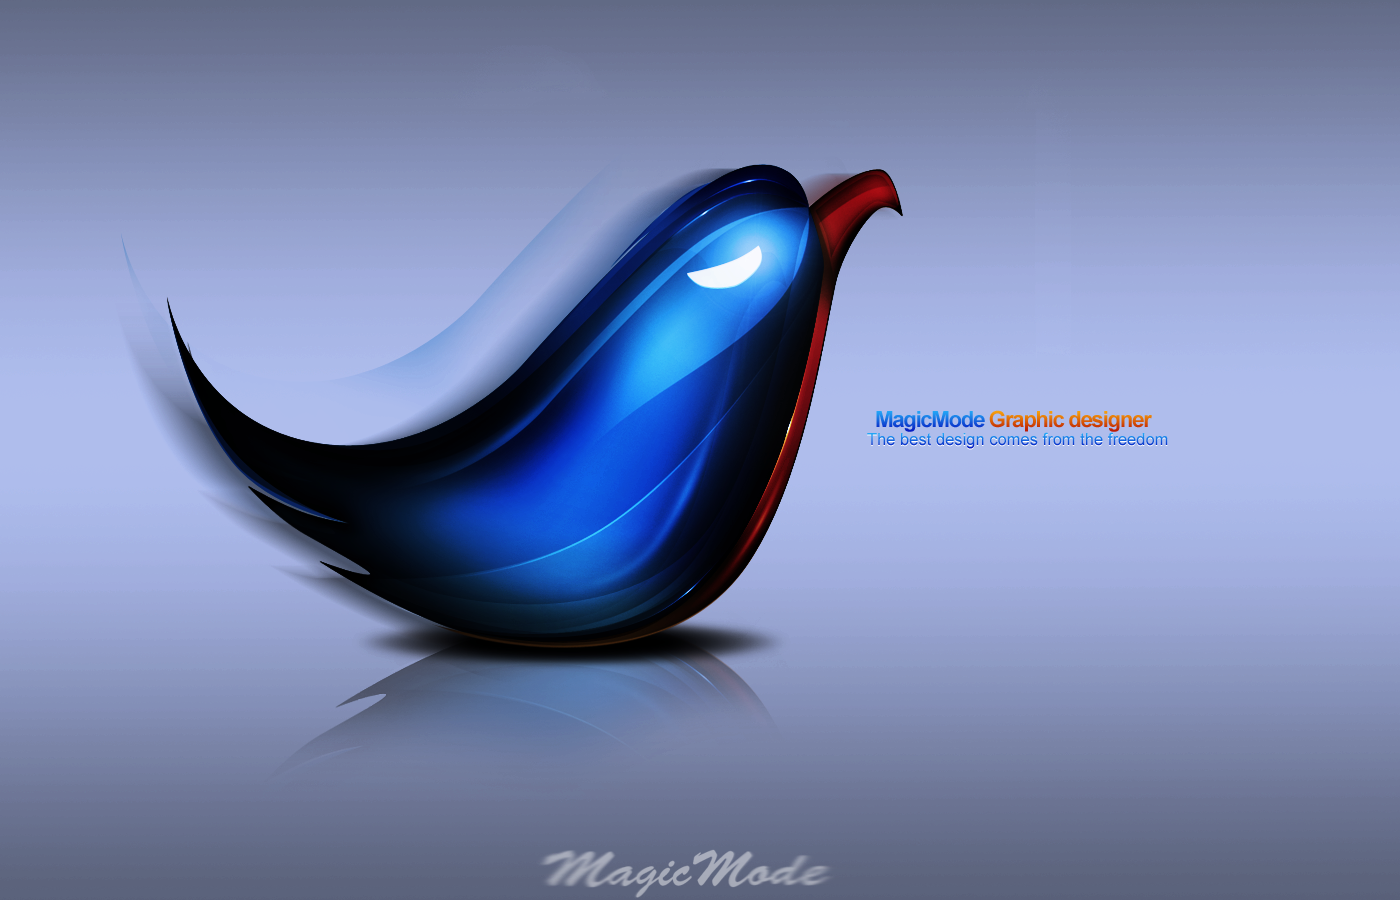 The Best Design Comes From Freedom By Magicmode